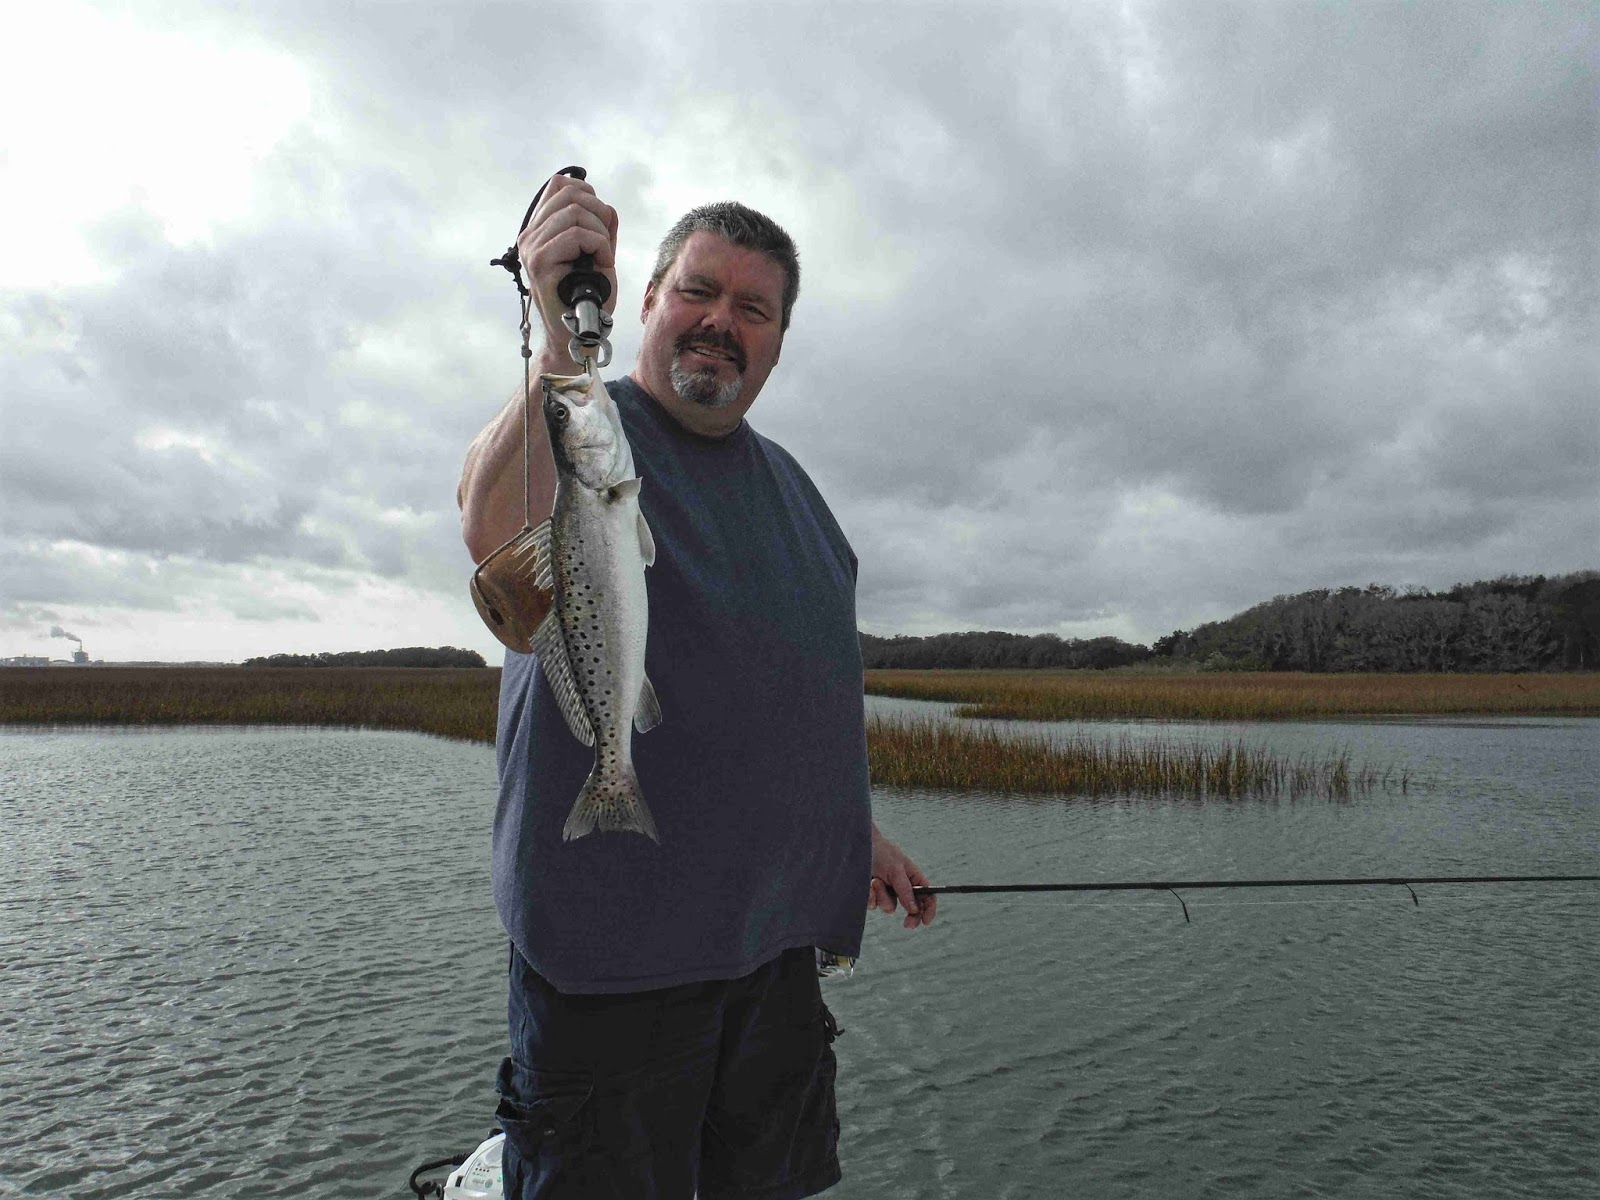 Amelia island fishing reports fight 39 n the wind but for Fishing in the wind